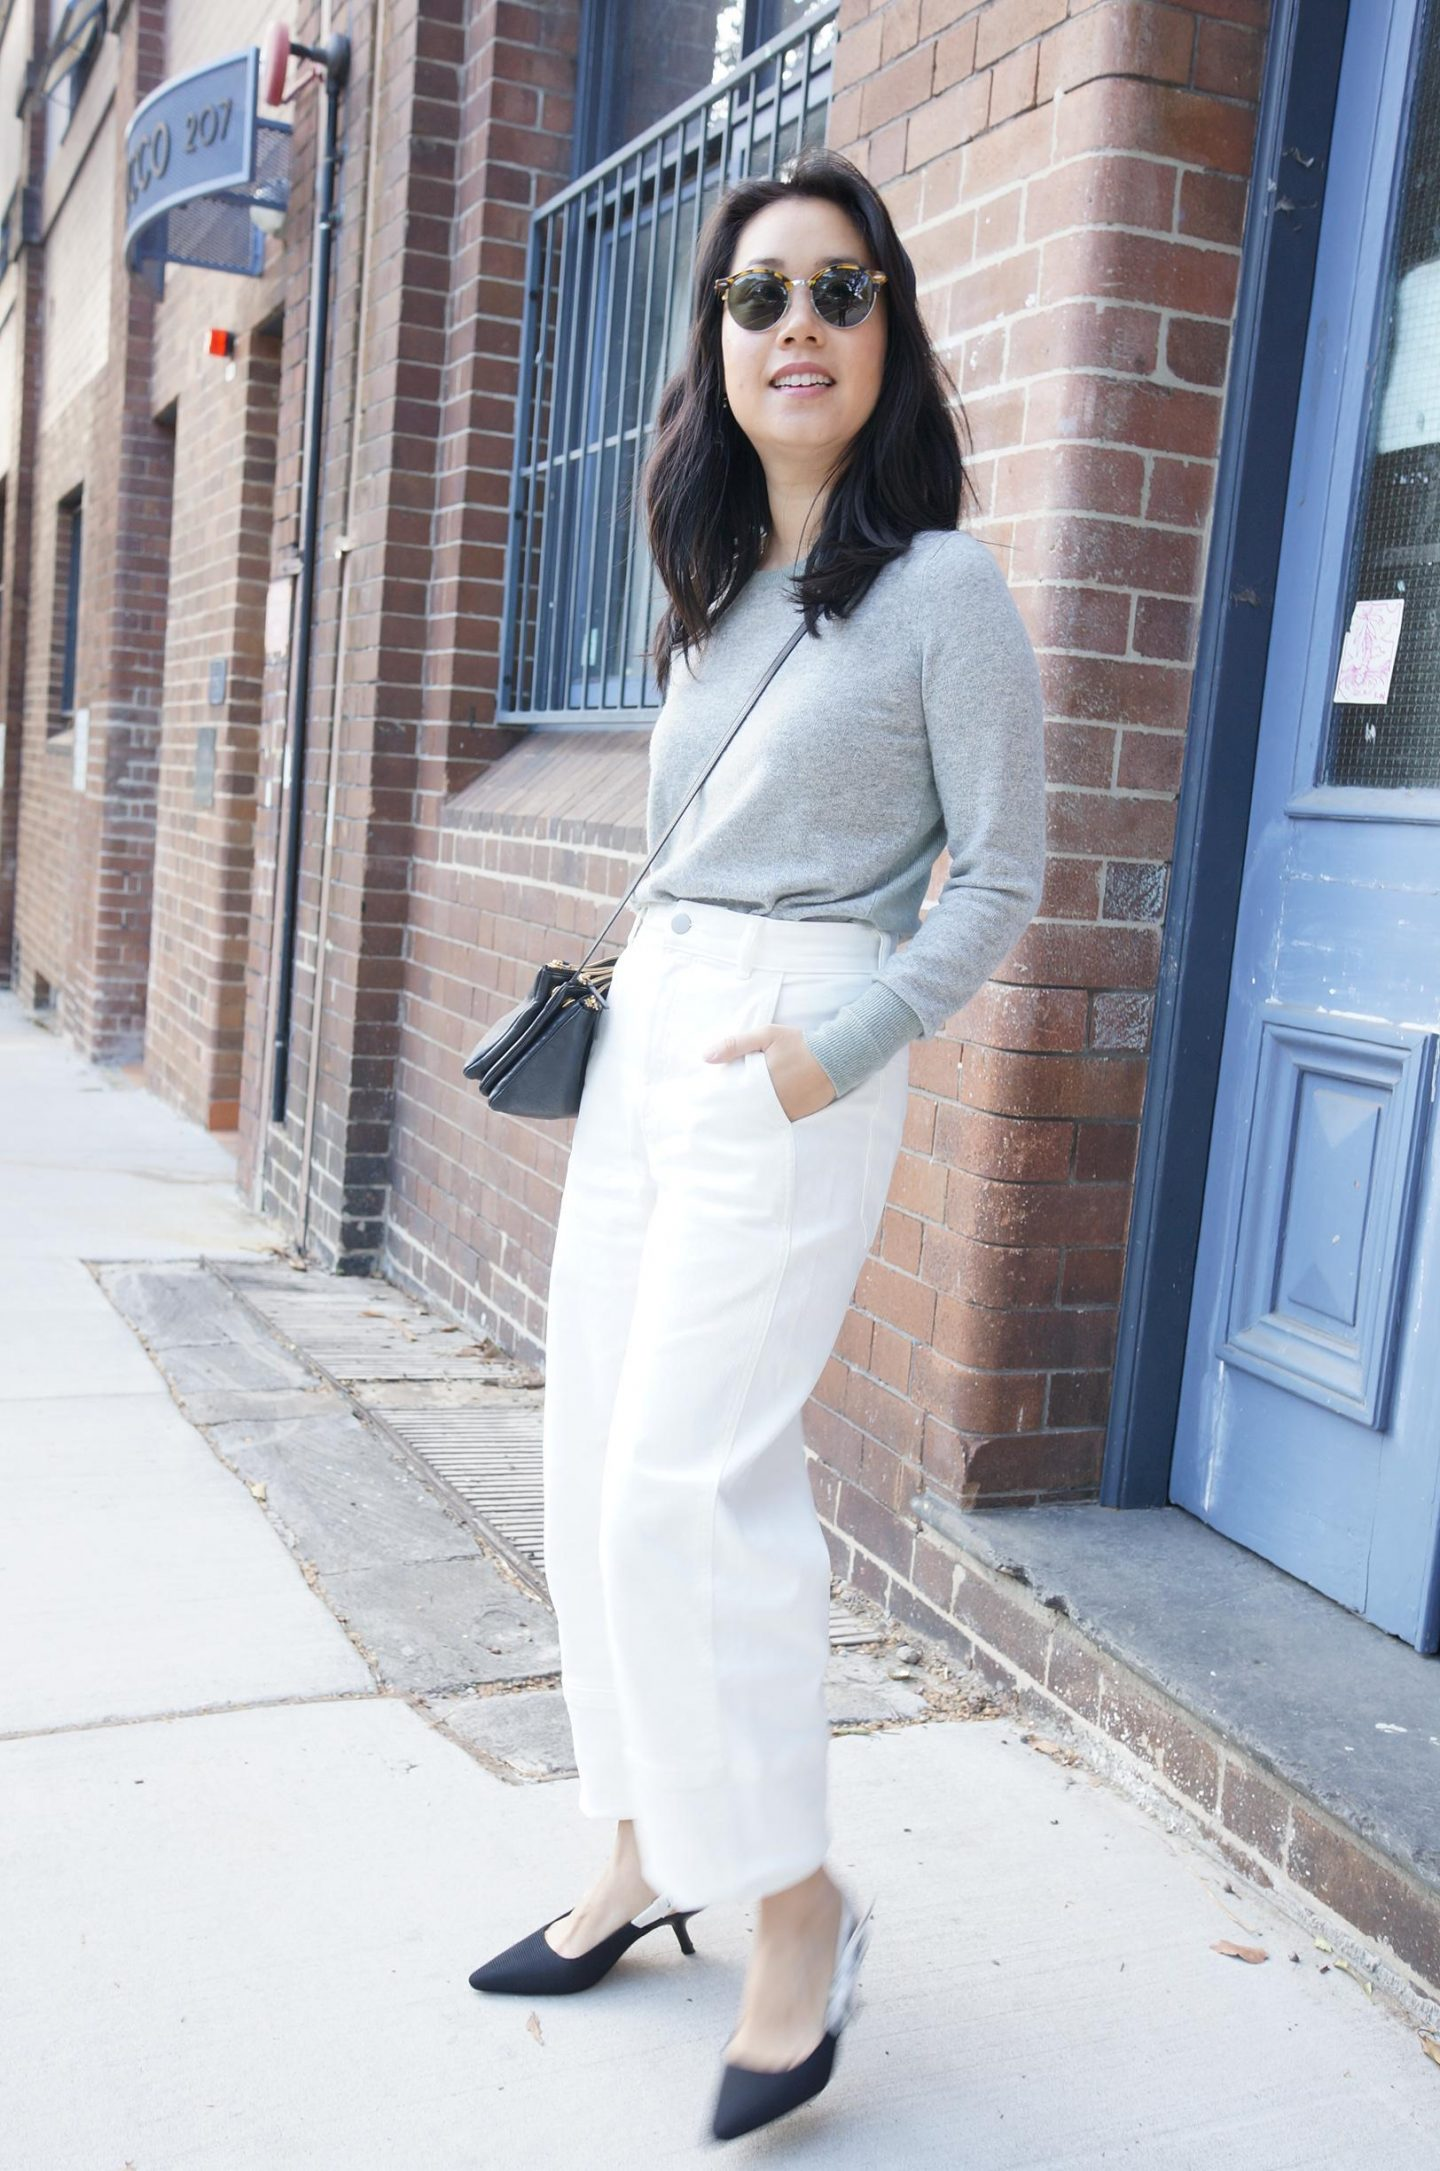 photo of asian woman wearing celine trio bag and white jeans in blog post about designer bag regrets